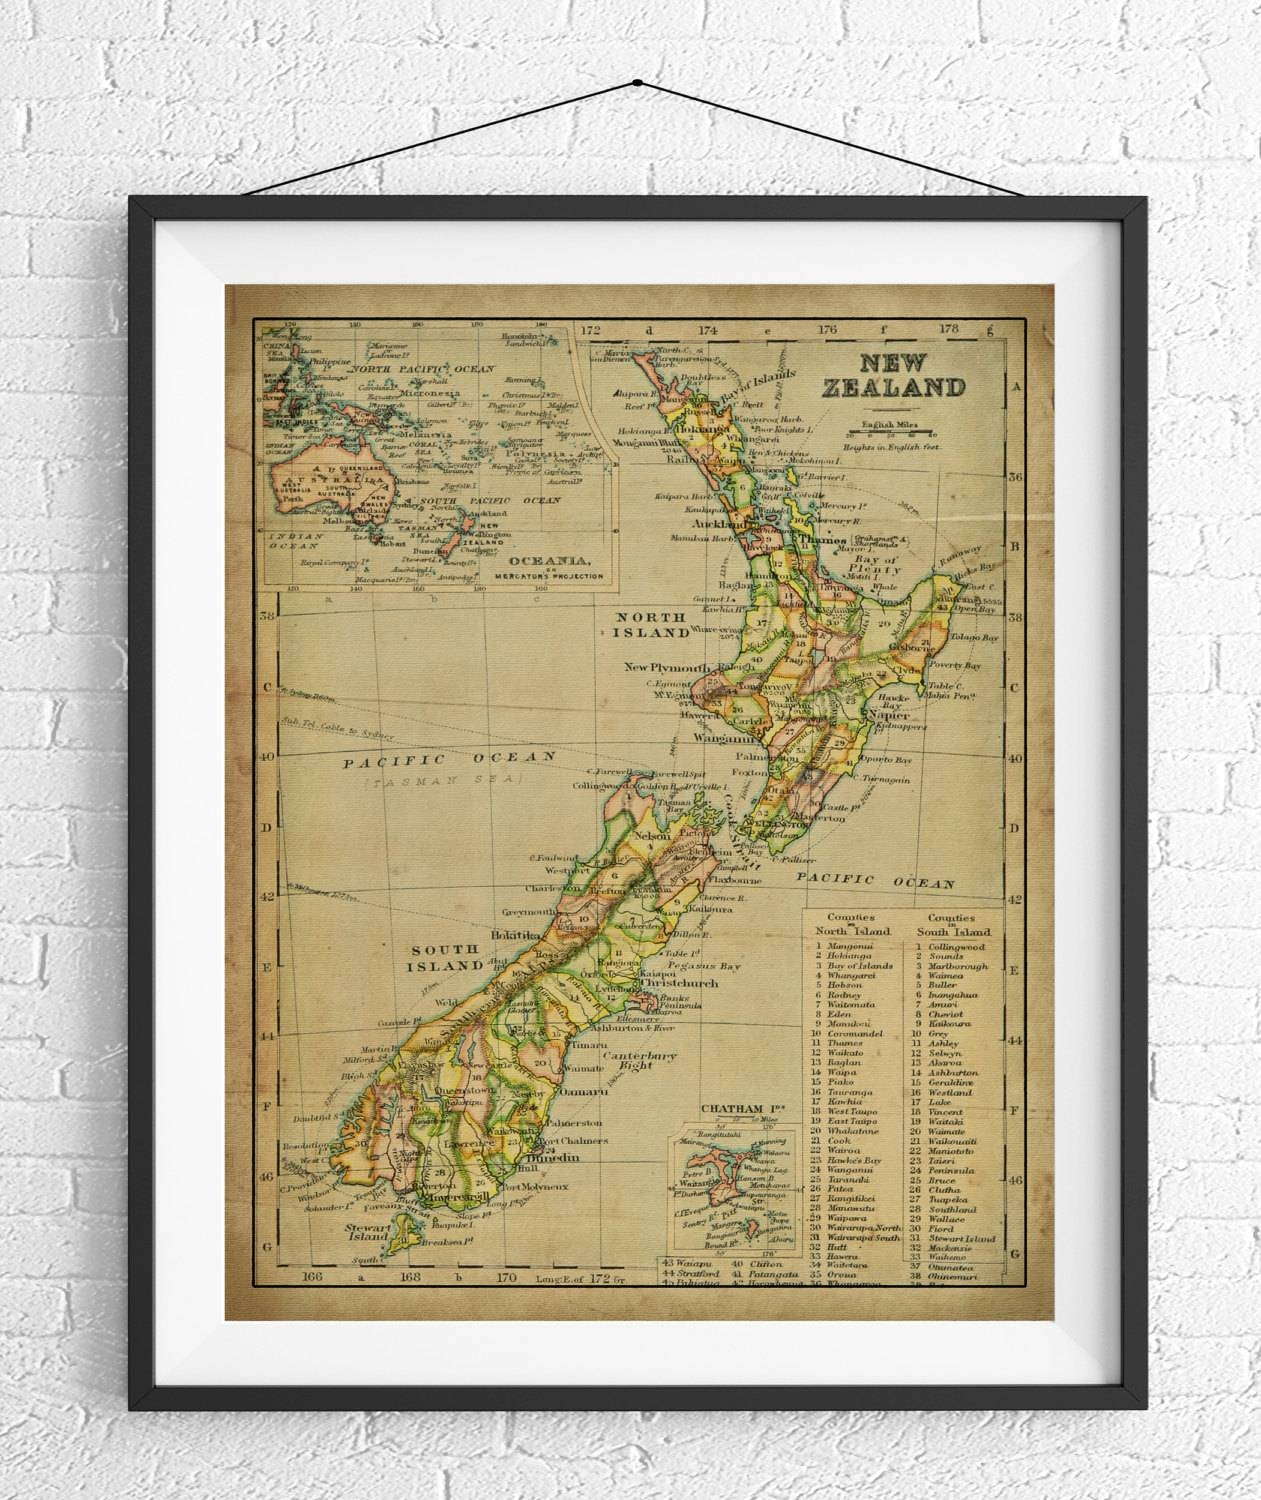 New Zealand Map Print, Vintage Map Art, Antique Map Wall Decor Pertaining To Current New Zealand Map Wall Art (View 12 of 20)